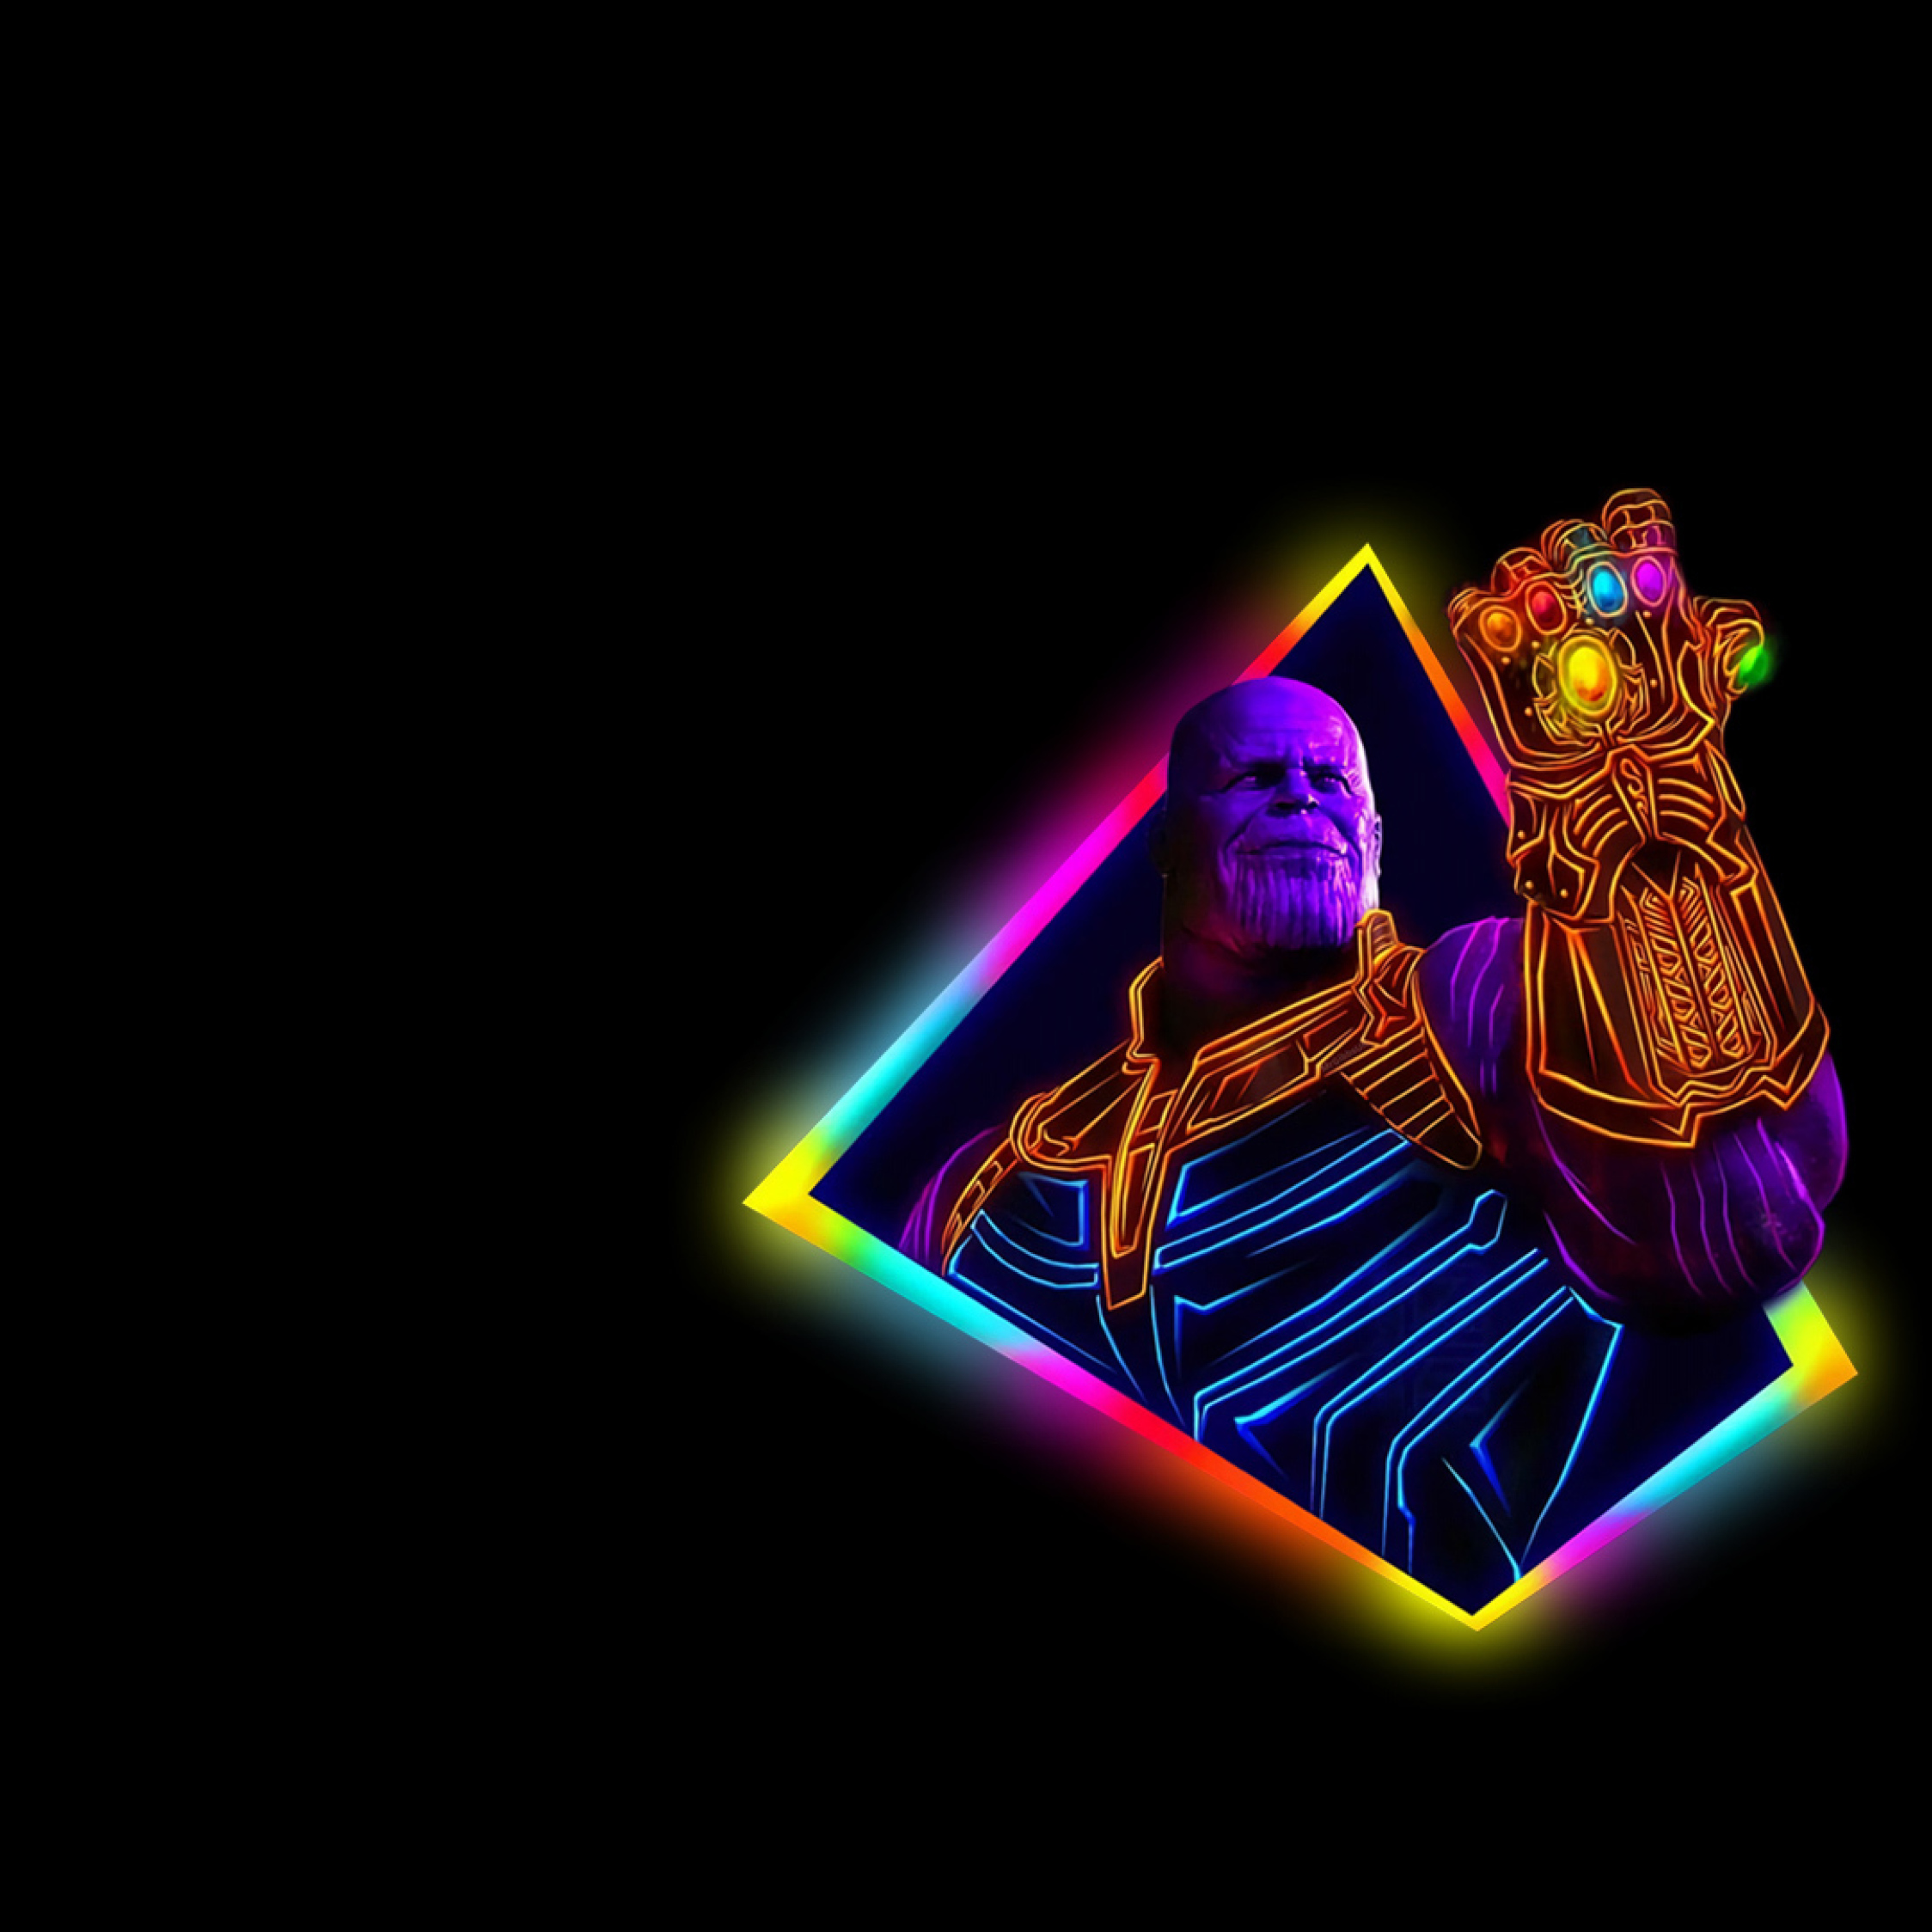 2248x2248 Thanos Avengers Infinity War 80s Outrun Art 2248x2248 Resolution Wallpaper Hd Movies 4k Wallpapers Images Photos And Background